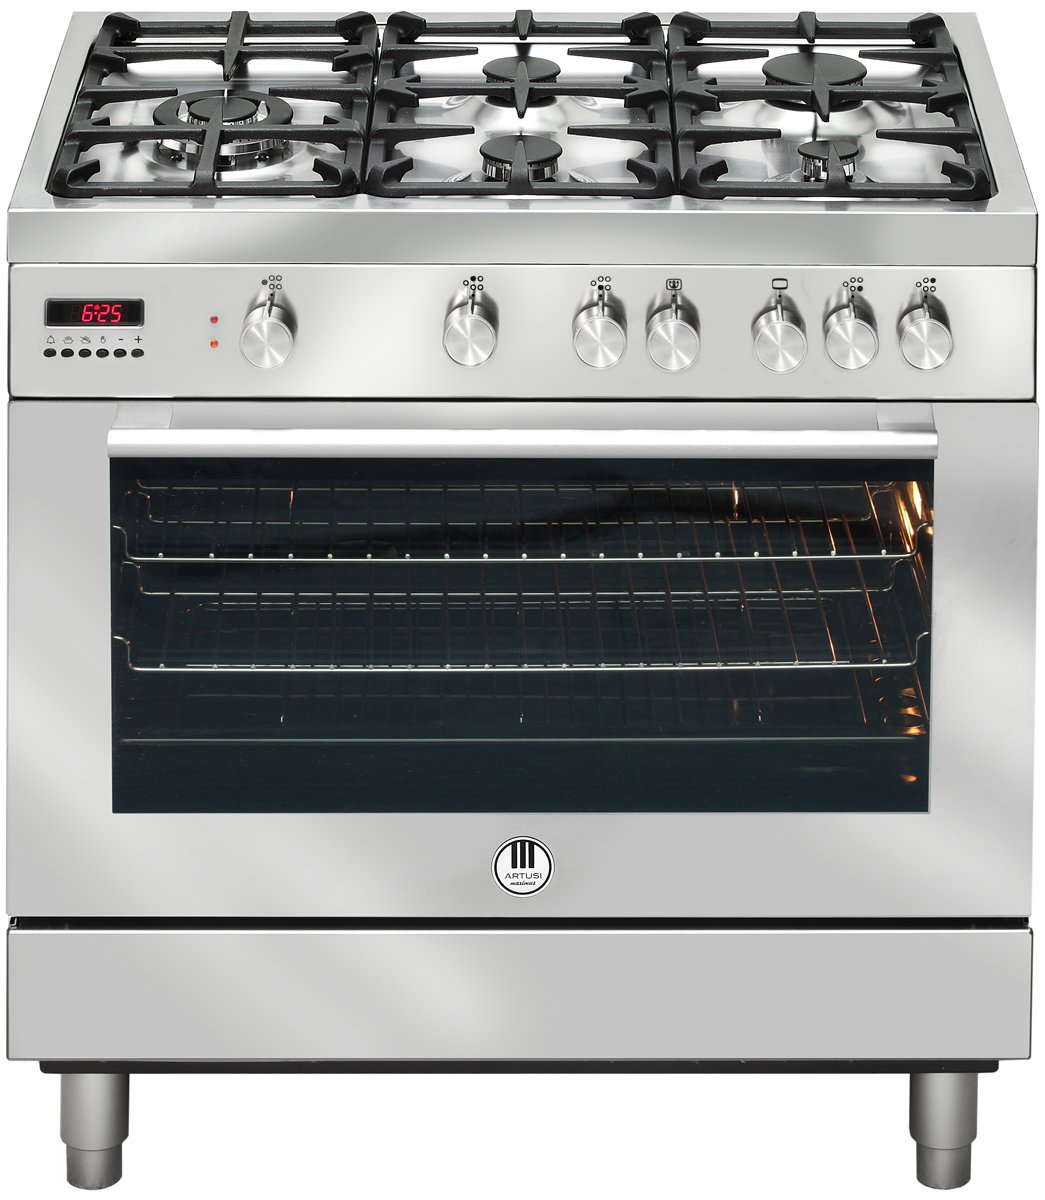 Artusi AFG900X Freestanding Dual Fuel Oven/Stove 124419